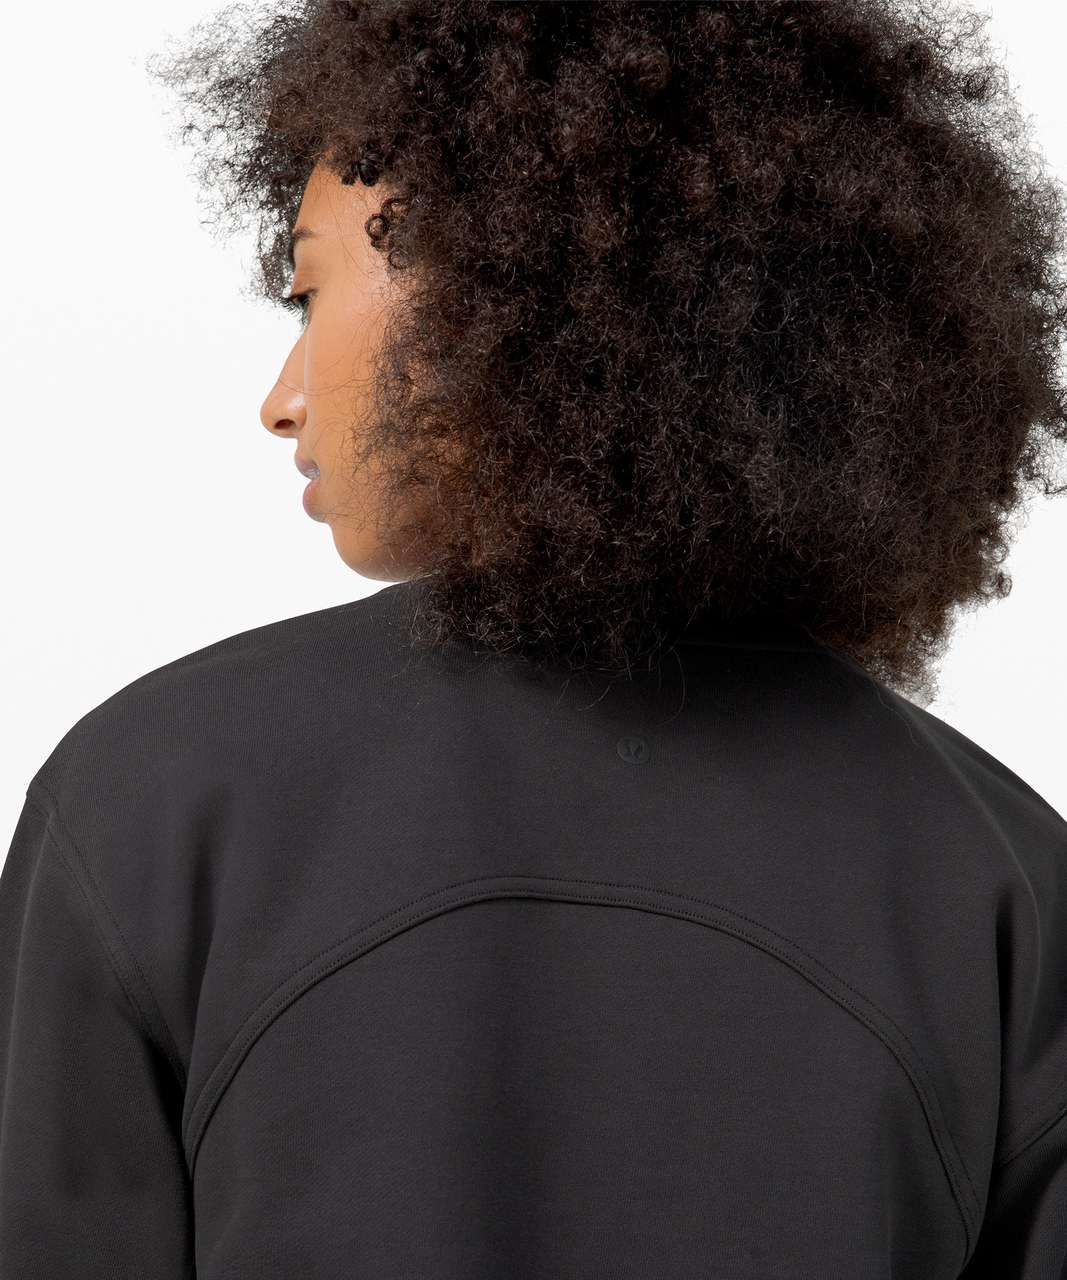 Lululemon All Yours Crew *Refreshed - Black